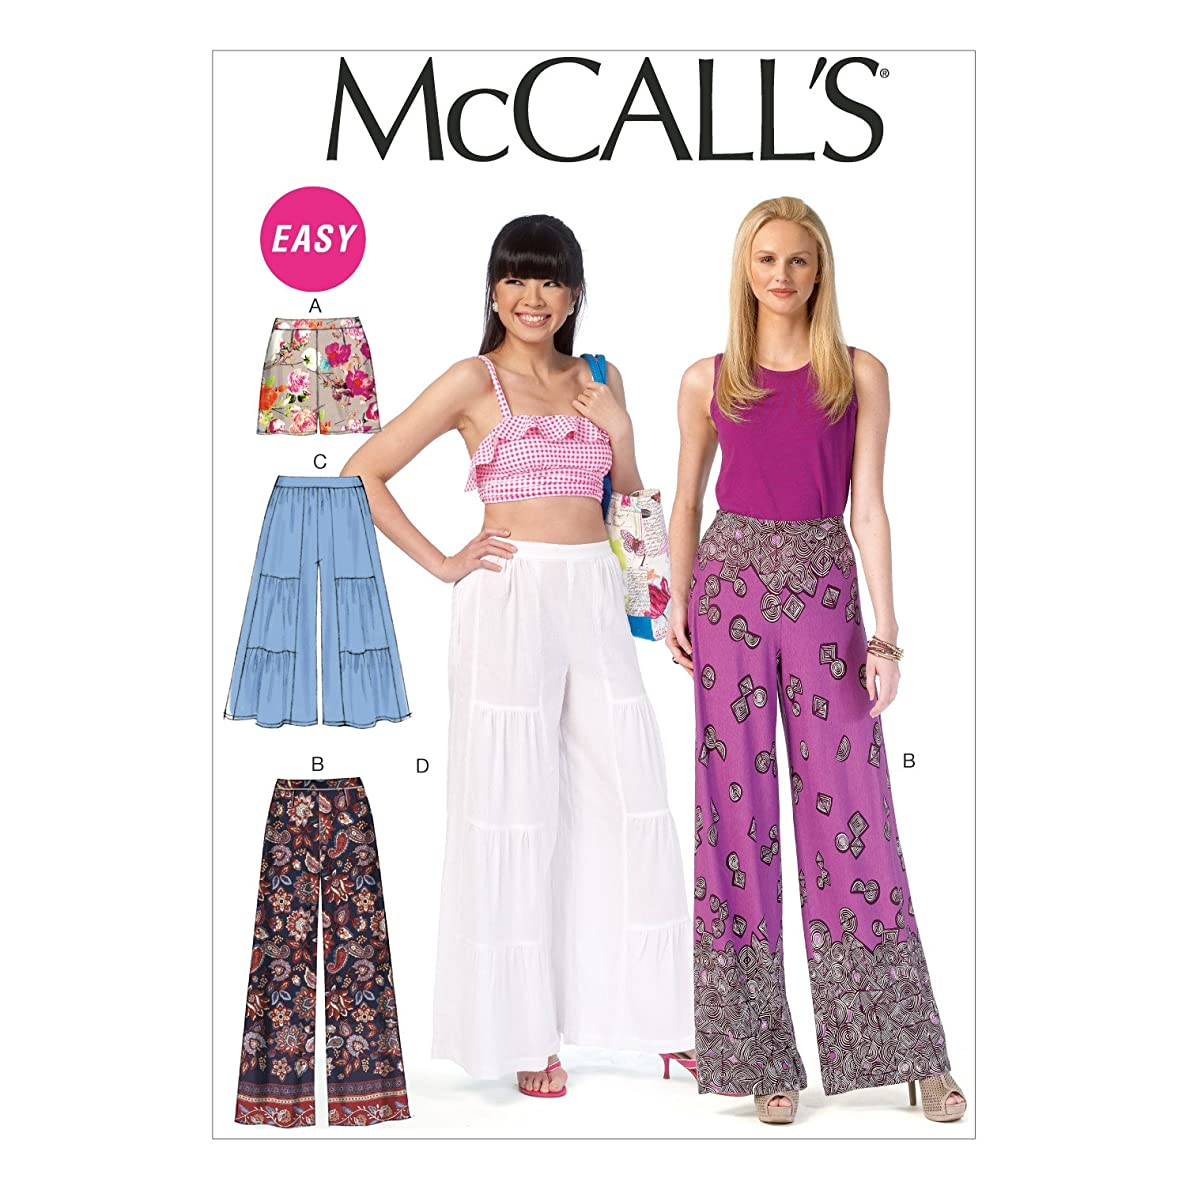 McCall's Patterns M7164 Misses' Shorts and Pants Sewing Template, Y (XSM-SML-MED)